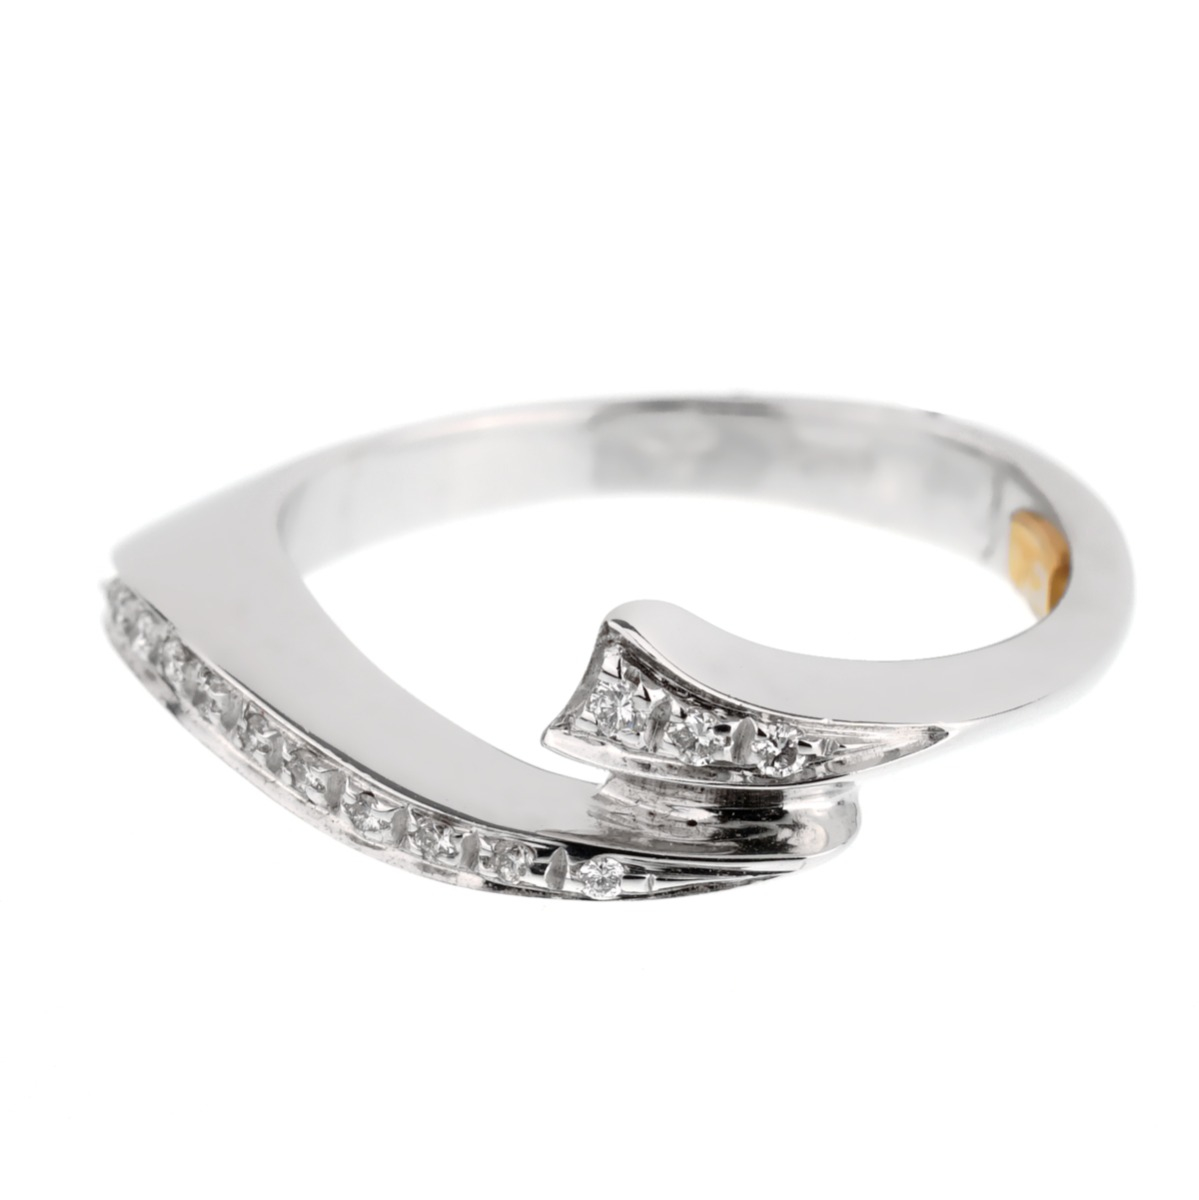 White Gold Diamond Cocktail Ring - Estate Jewelry